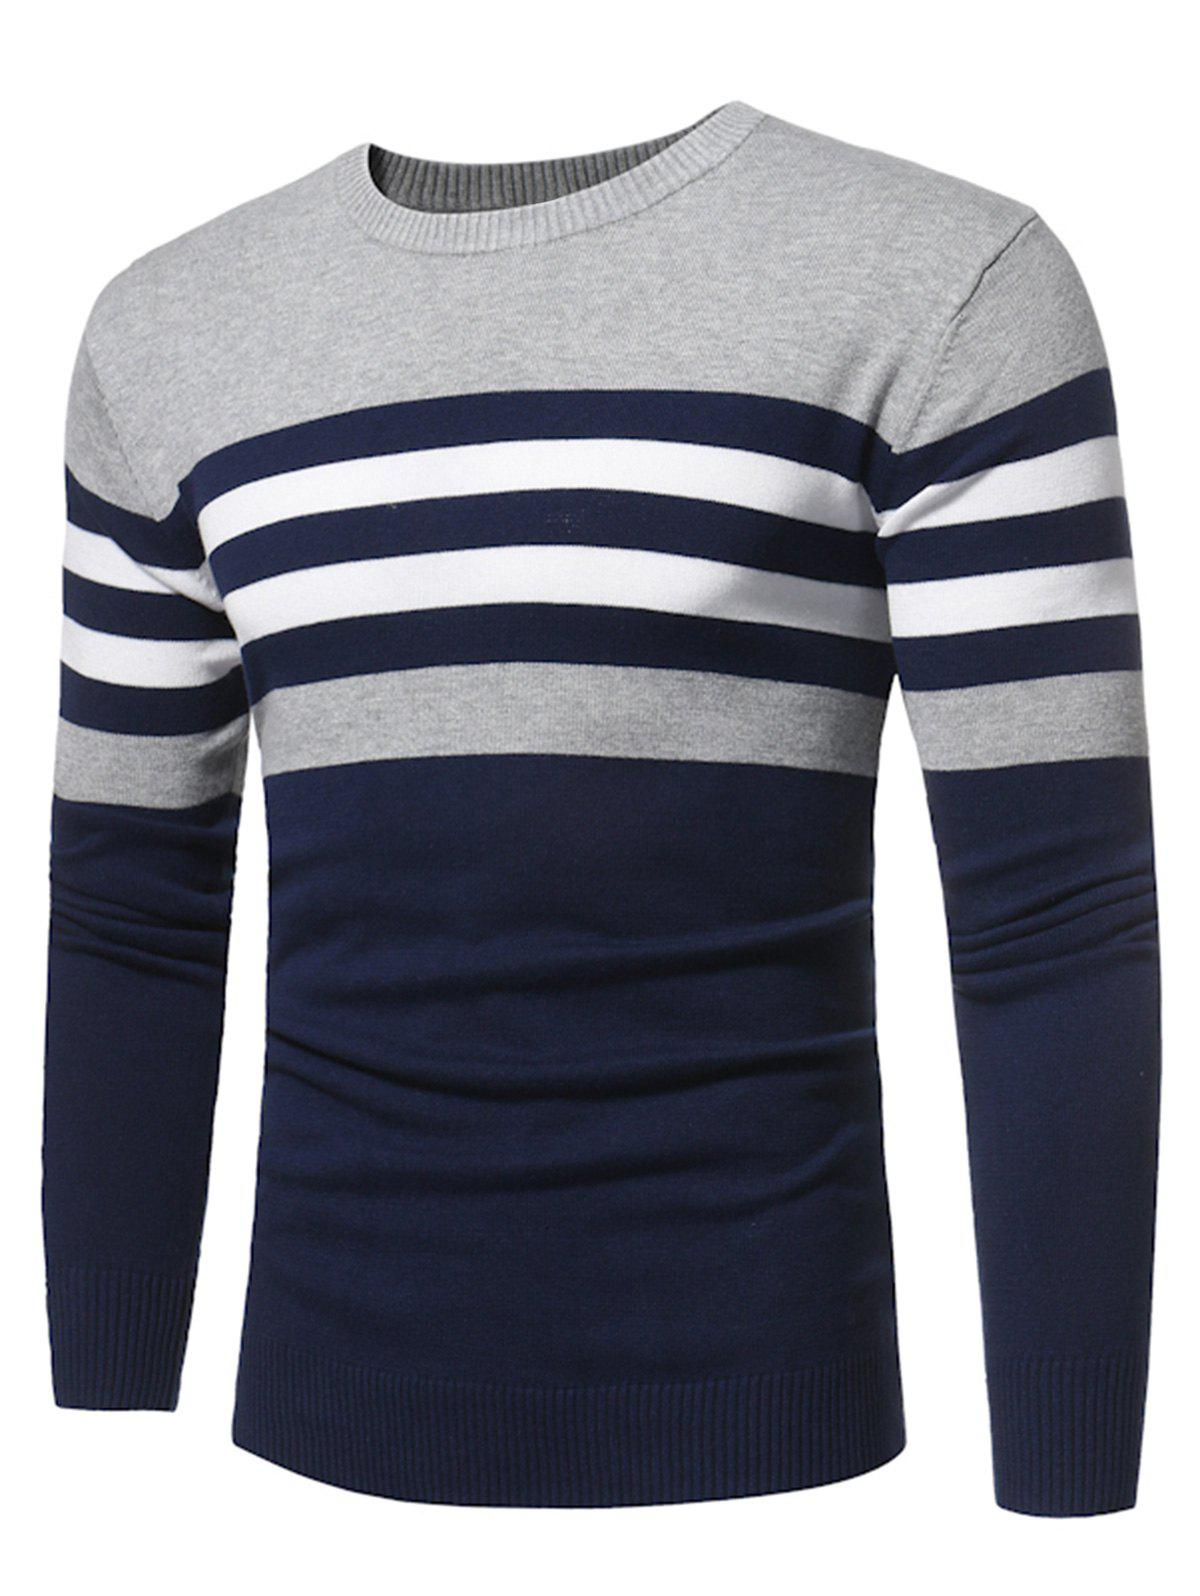 Color Block Stripe Panel Knitted SweaterMEN<br><br>Size: 2XL; Color: DEEP BLUE; Type: Pullovers; Material: Cotton,Polyester; Sleeve Length: Full; Collar: Crew Neck; Style: Fashion; Weight: 0.3500kg; Package Contents: 1 x Sweater;